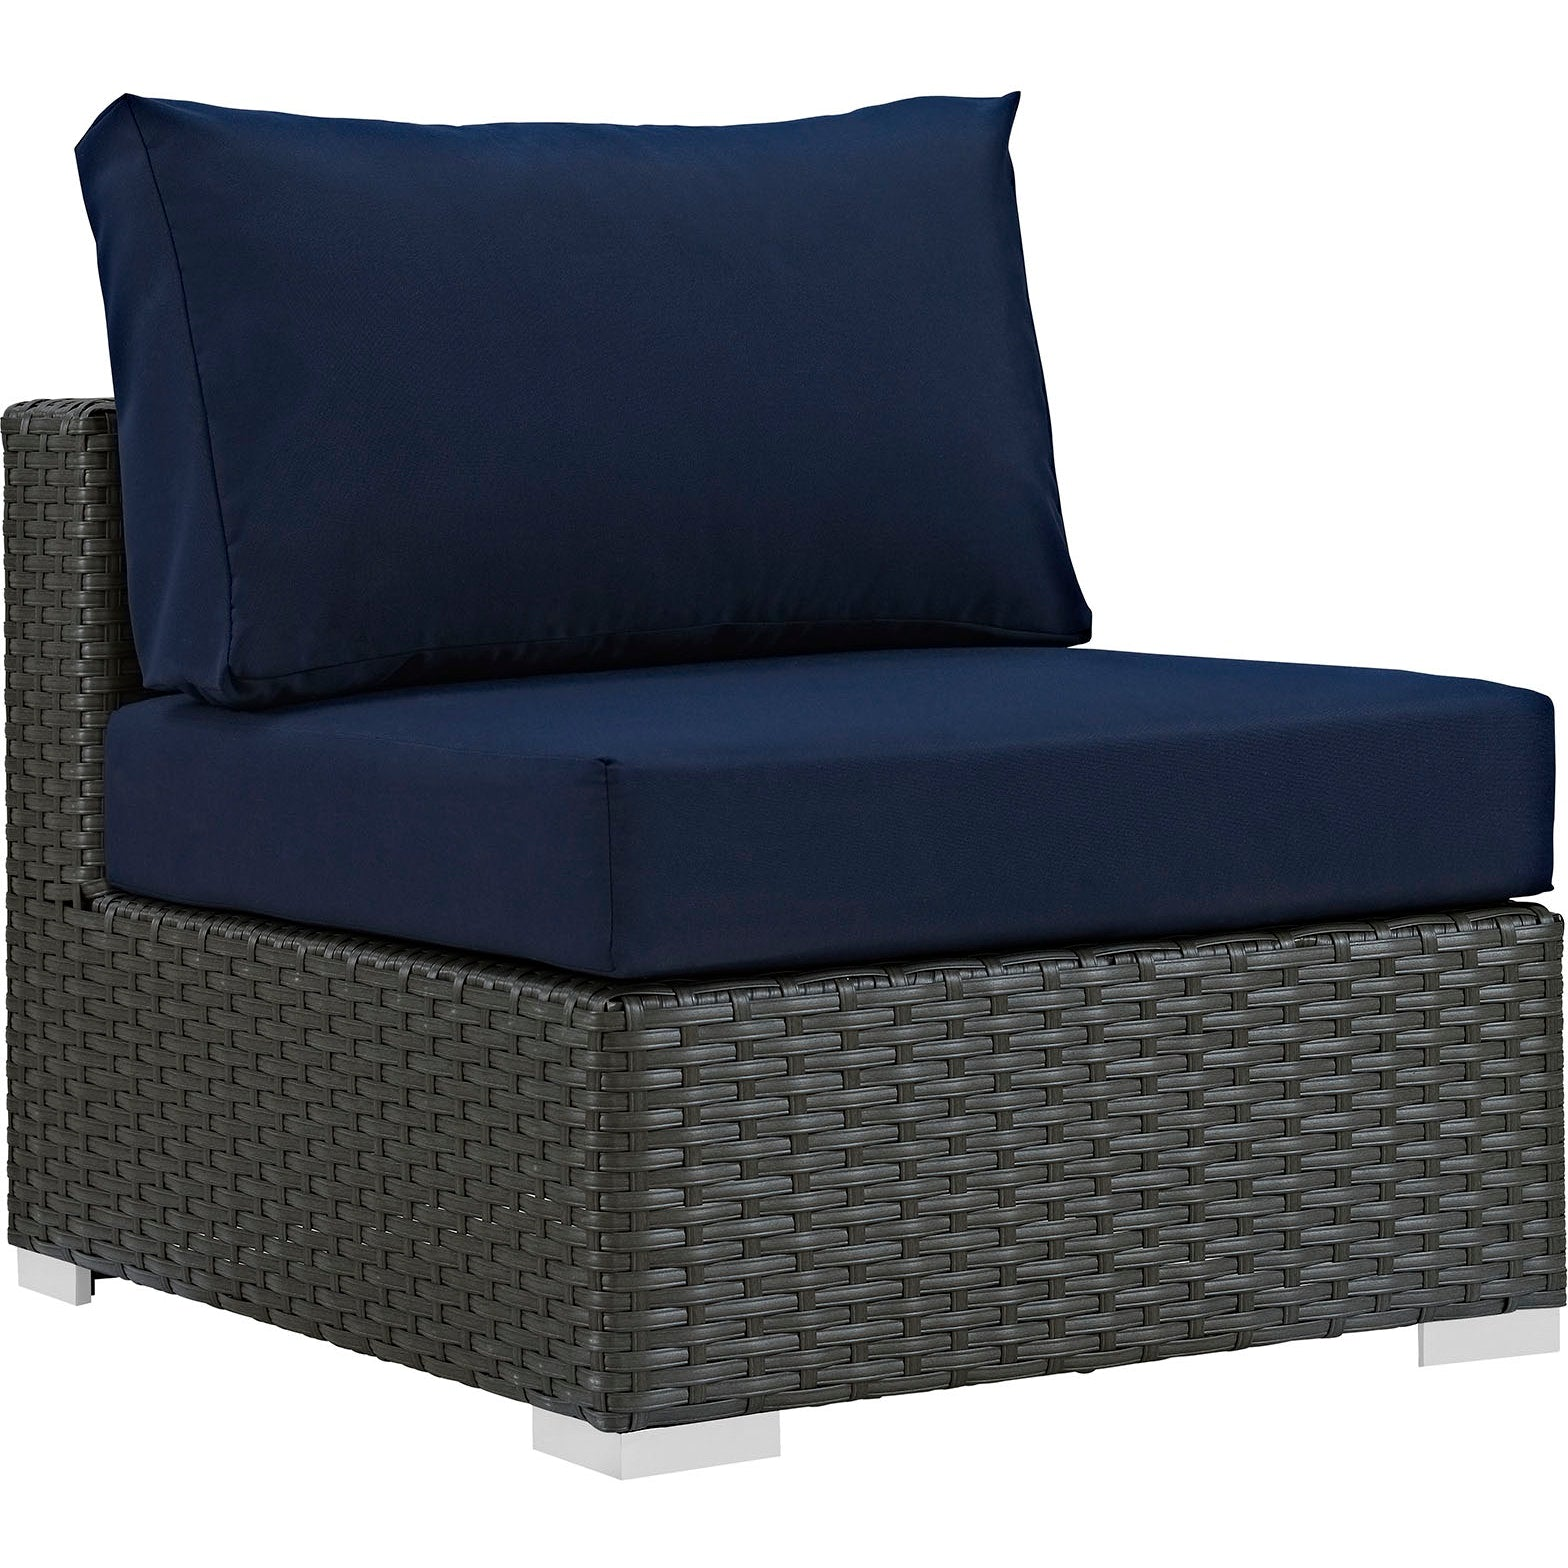 Sojourn 5 Piece Outdoor Patio Sunbrella® Sectional Set - Canvas Navy